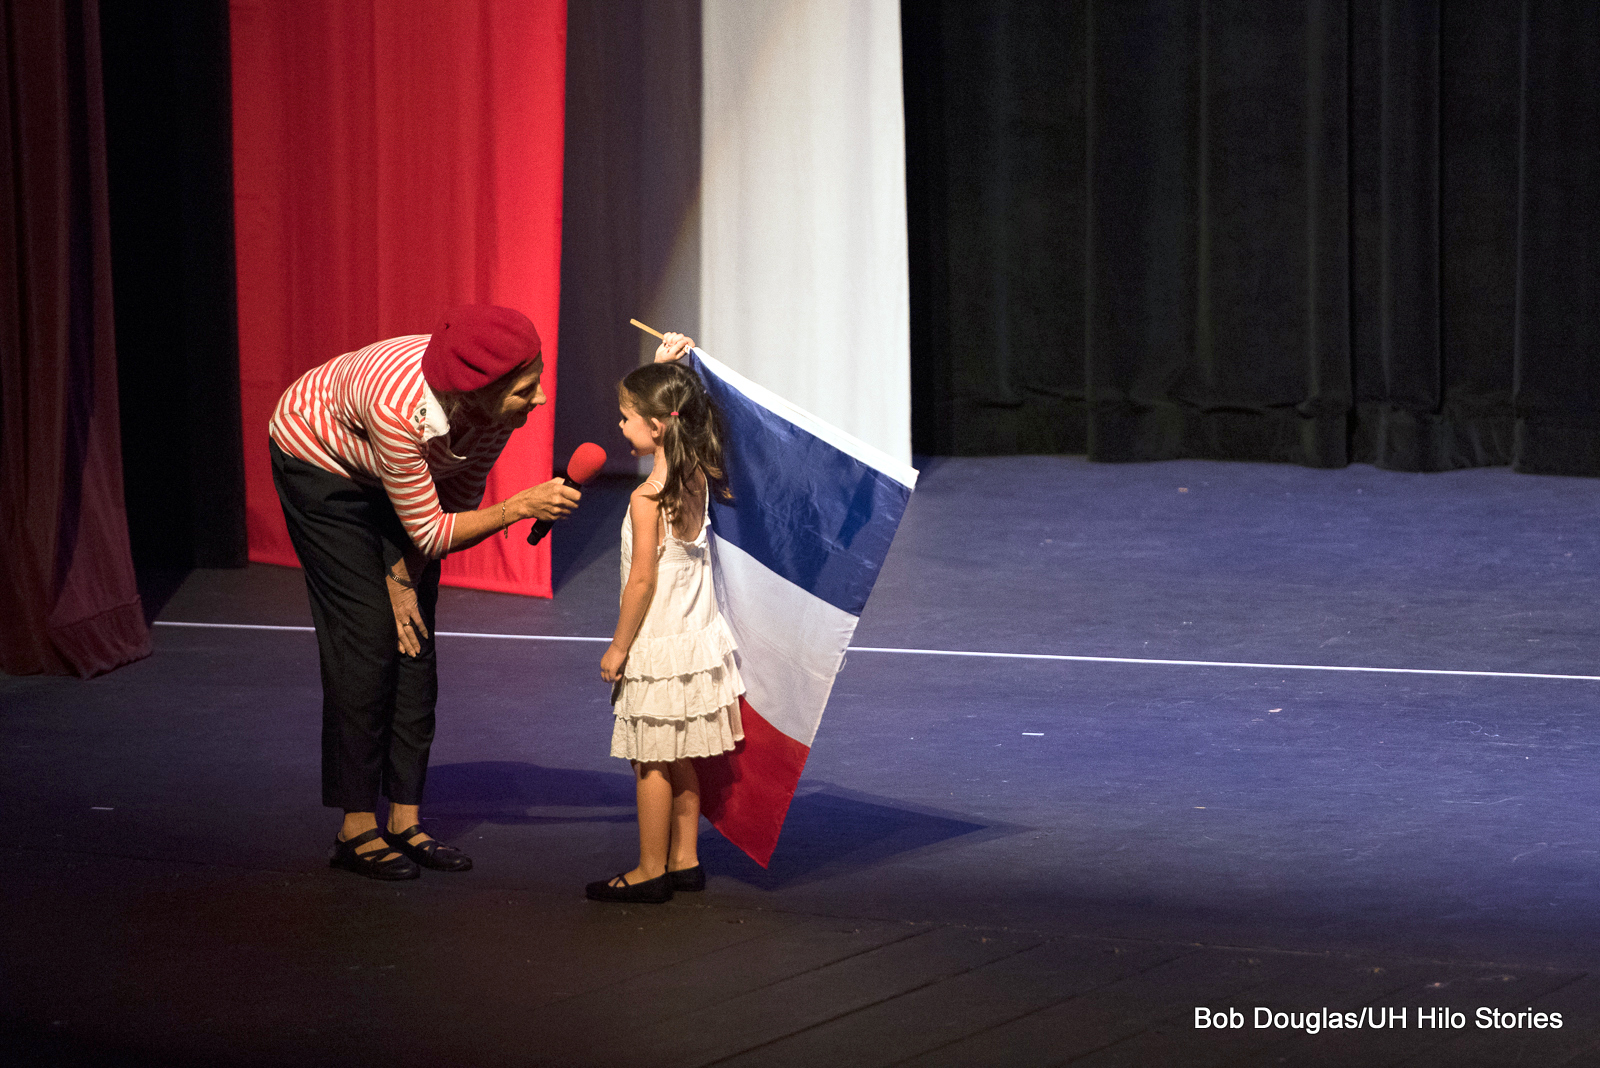 Woman holing microphone for young girl with flag.